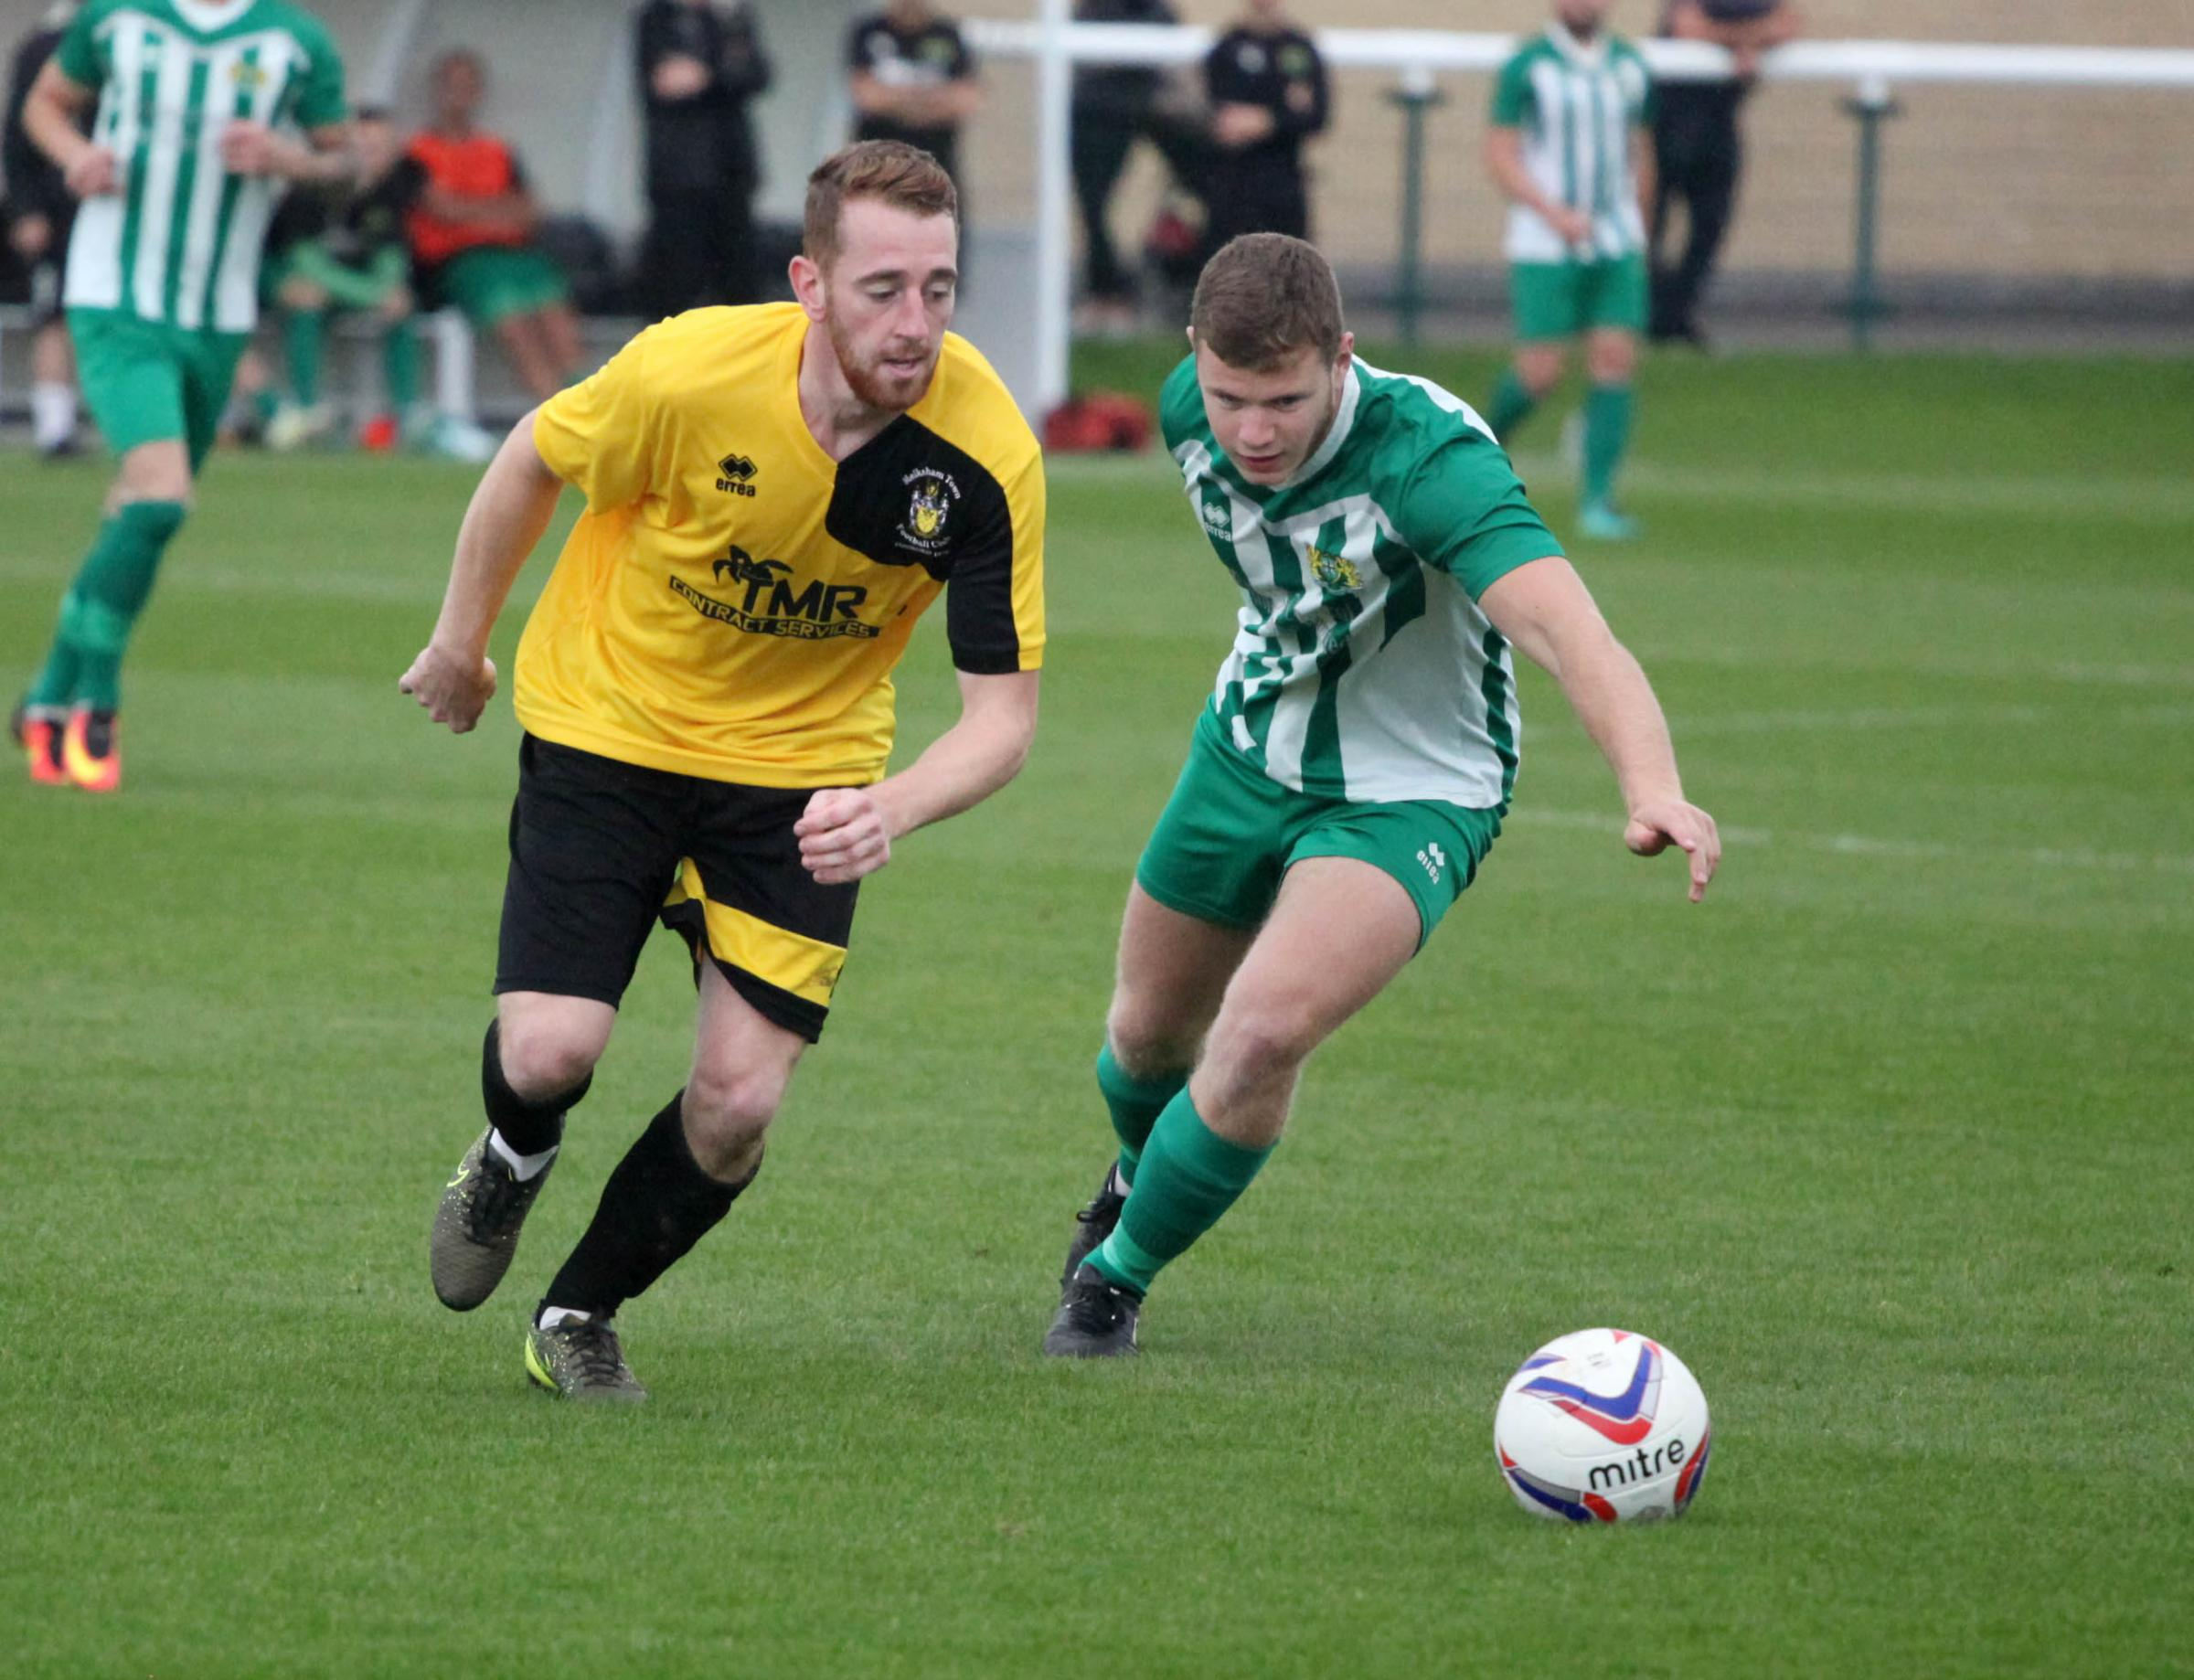 Melksham Town's Alex Grimshaw (yellow) takes on a Hengrove Athletic opponent on Saturday. PICTURE: VICKY SCIPIO